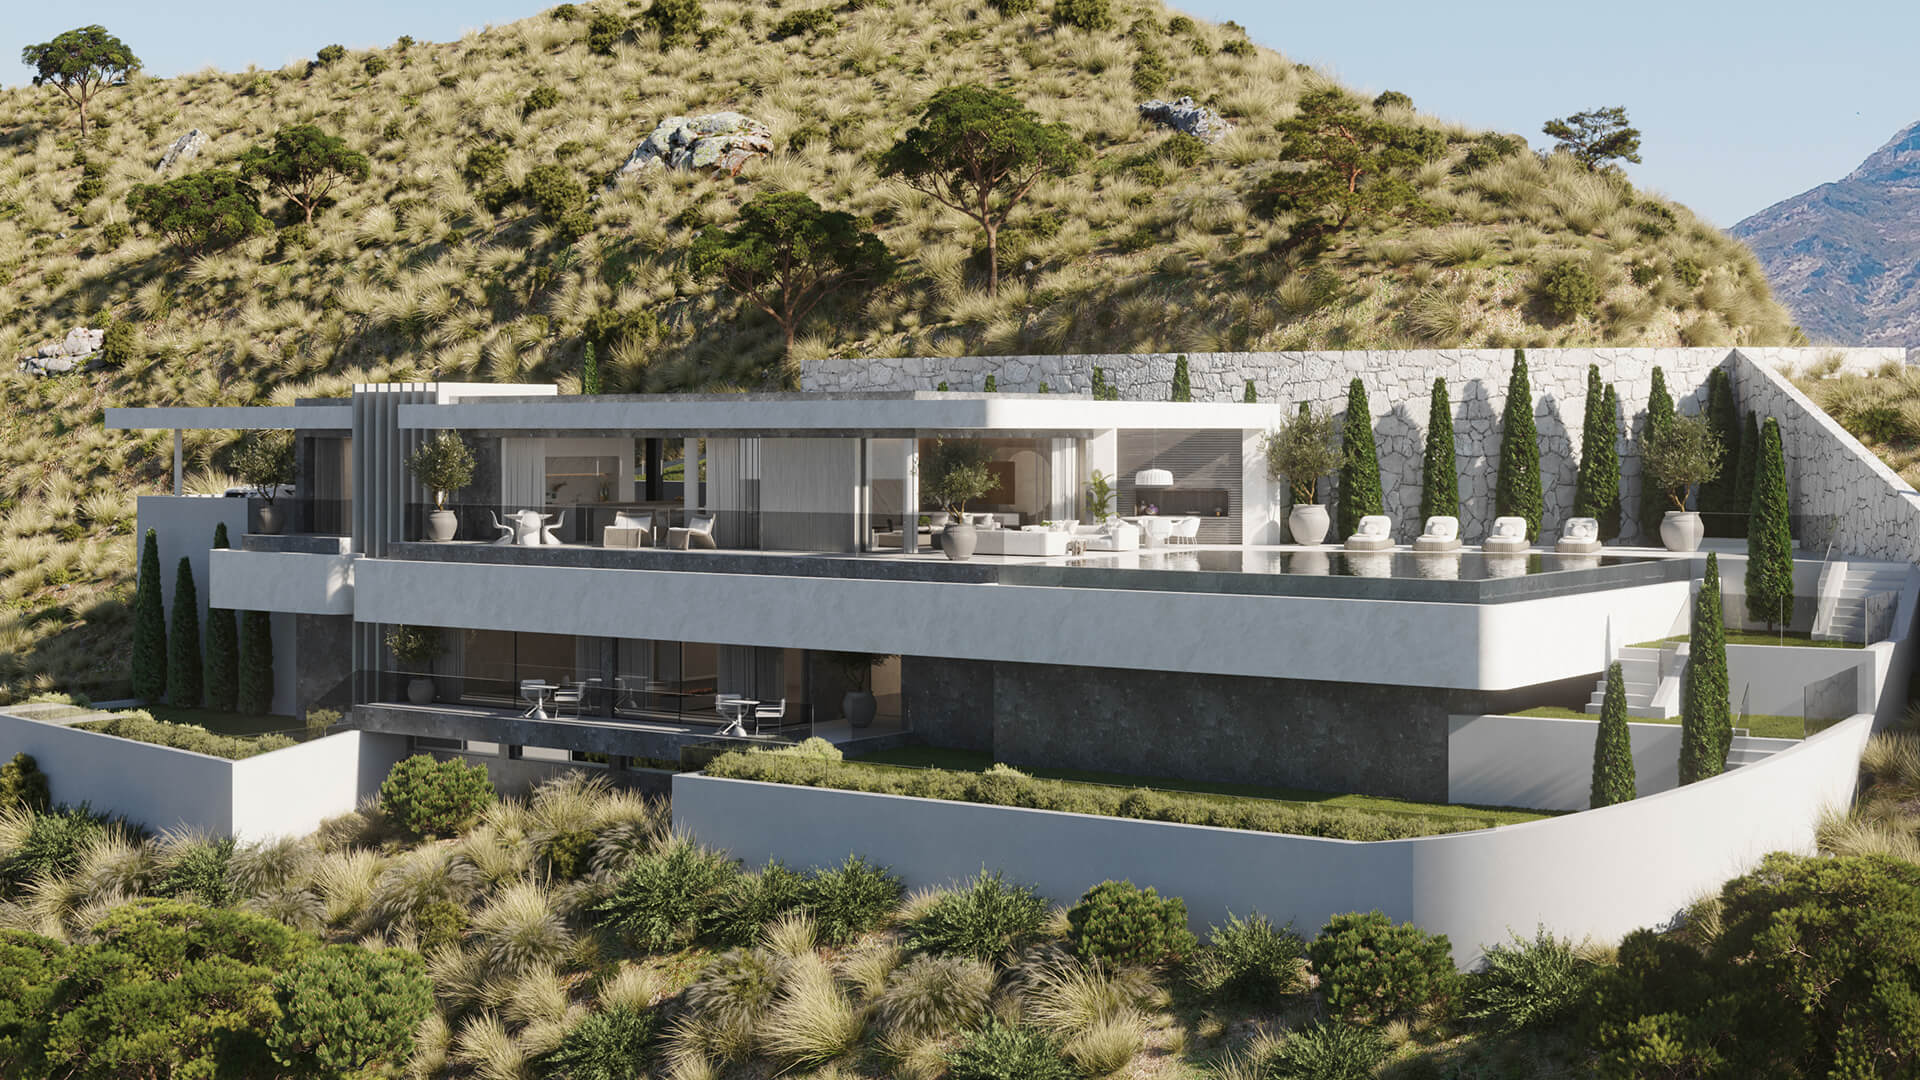 18 New Luxury Villas For Sale - Benahavis